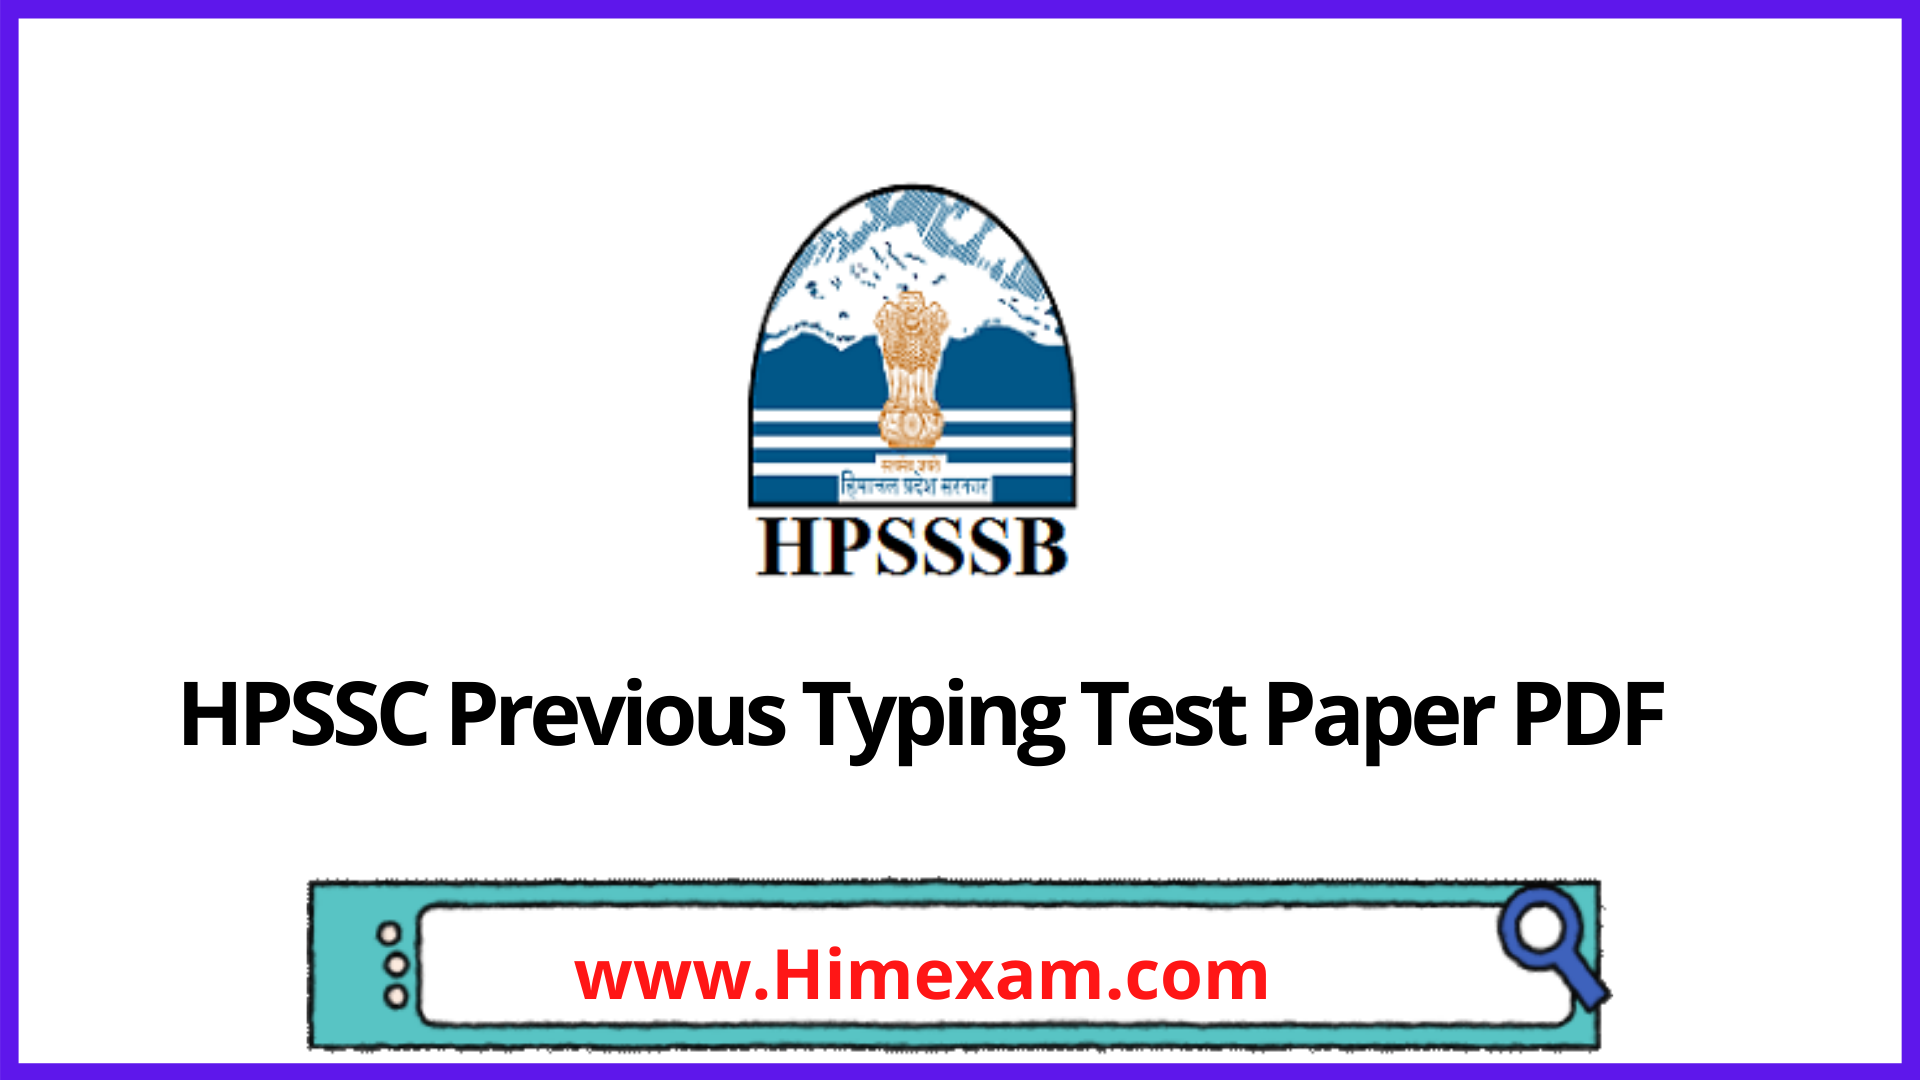 HPSSC Previous Typing Test Paper PDF